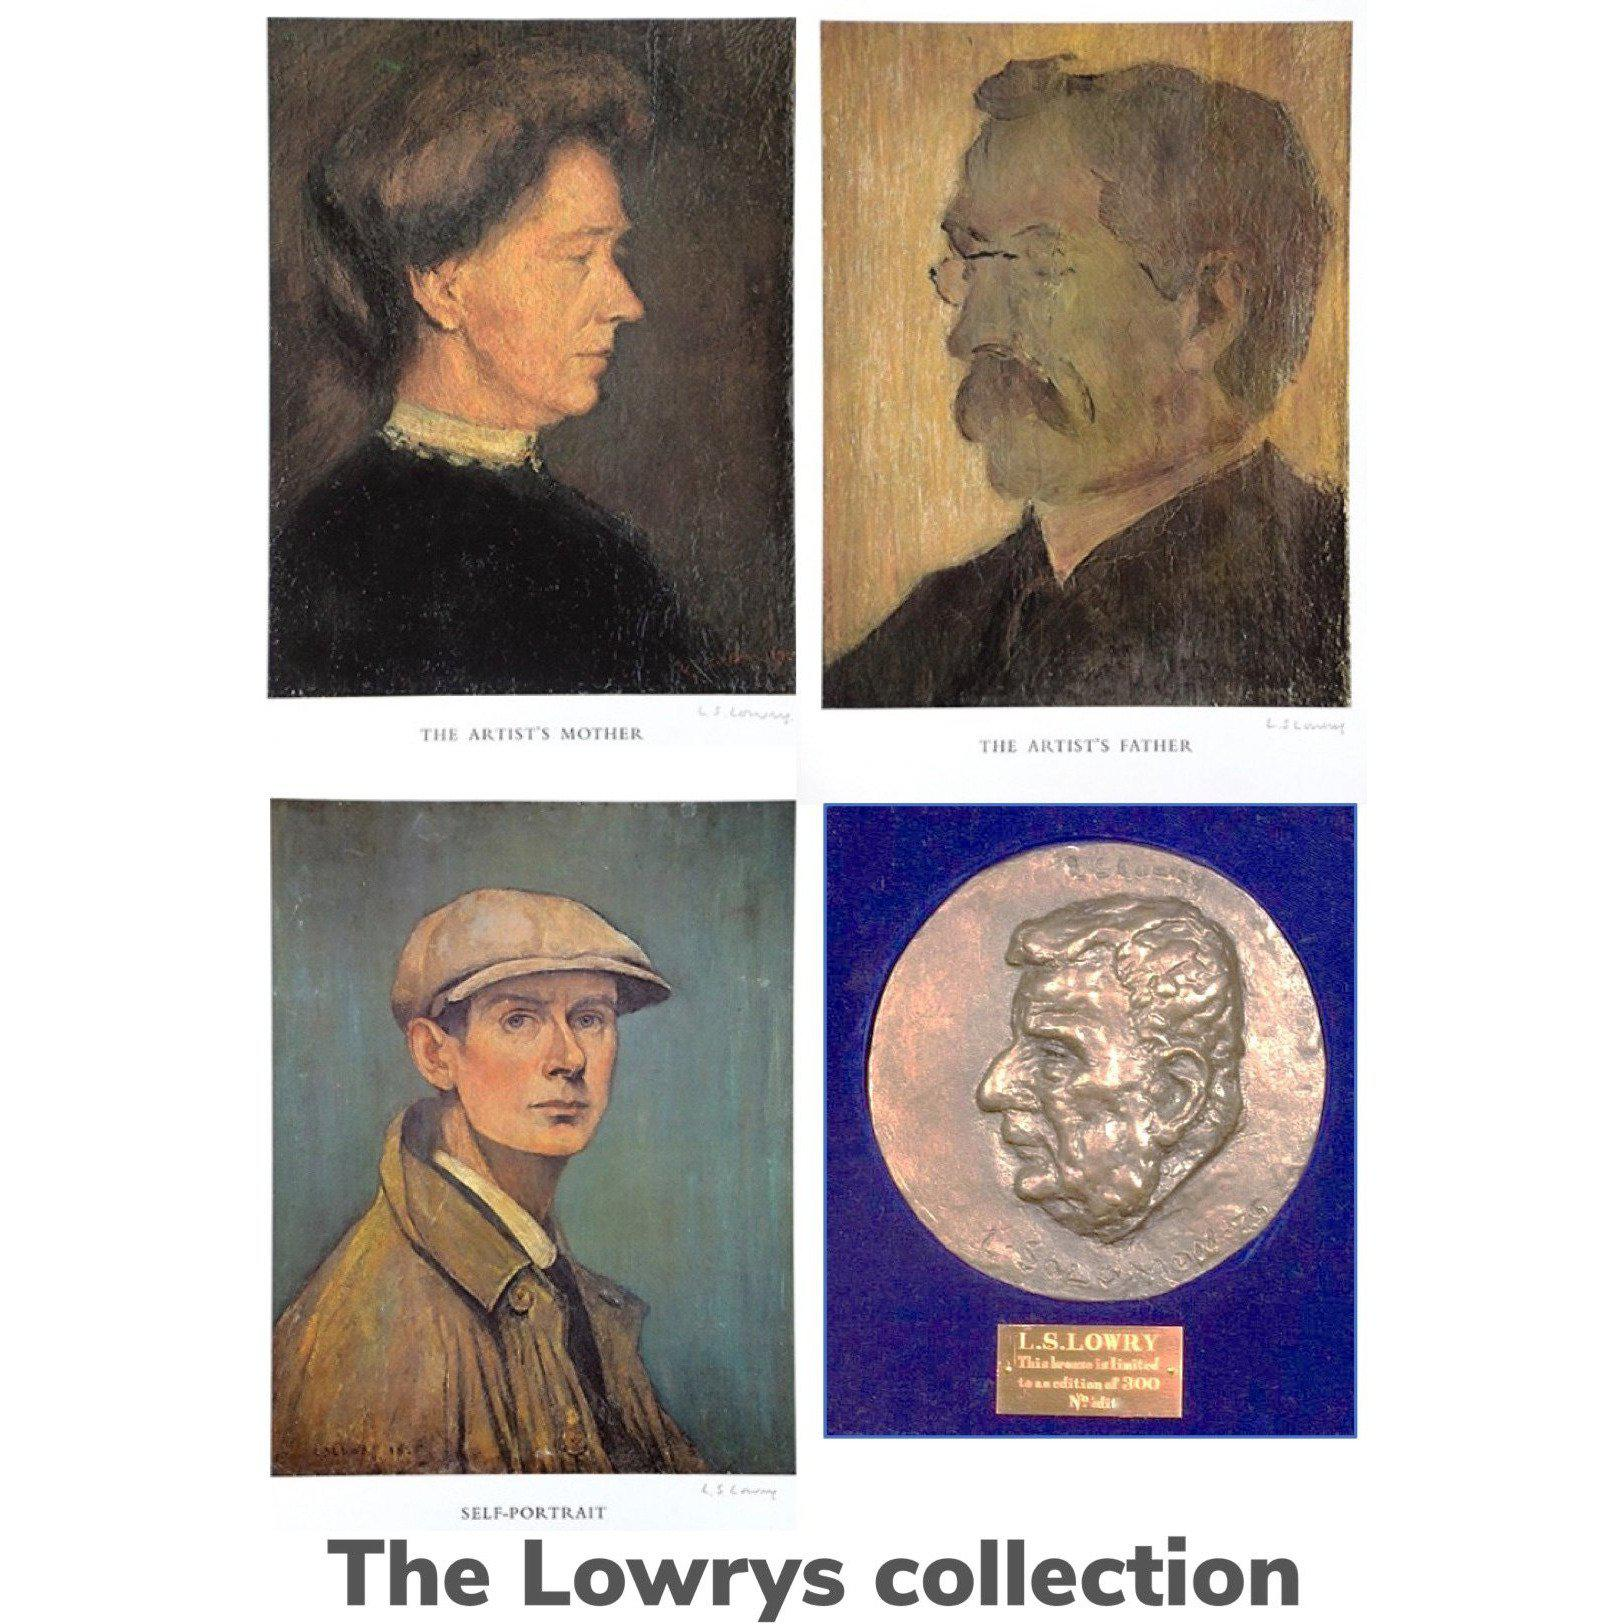 L S Lowry - The Lowrys Collection, signed limited prints